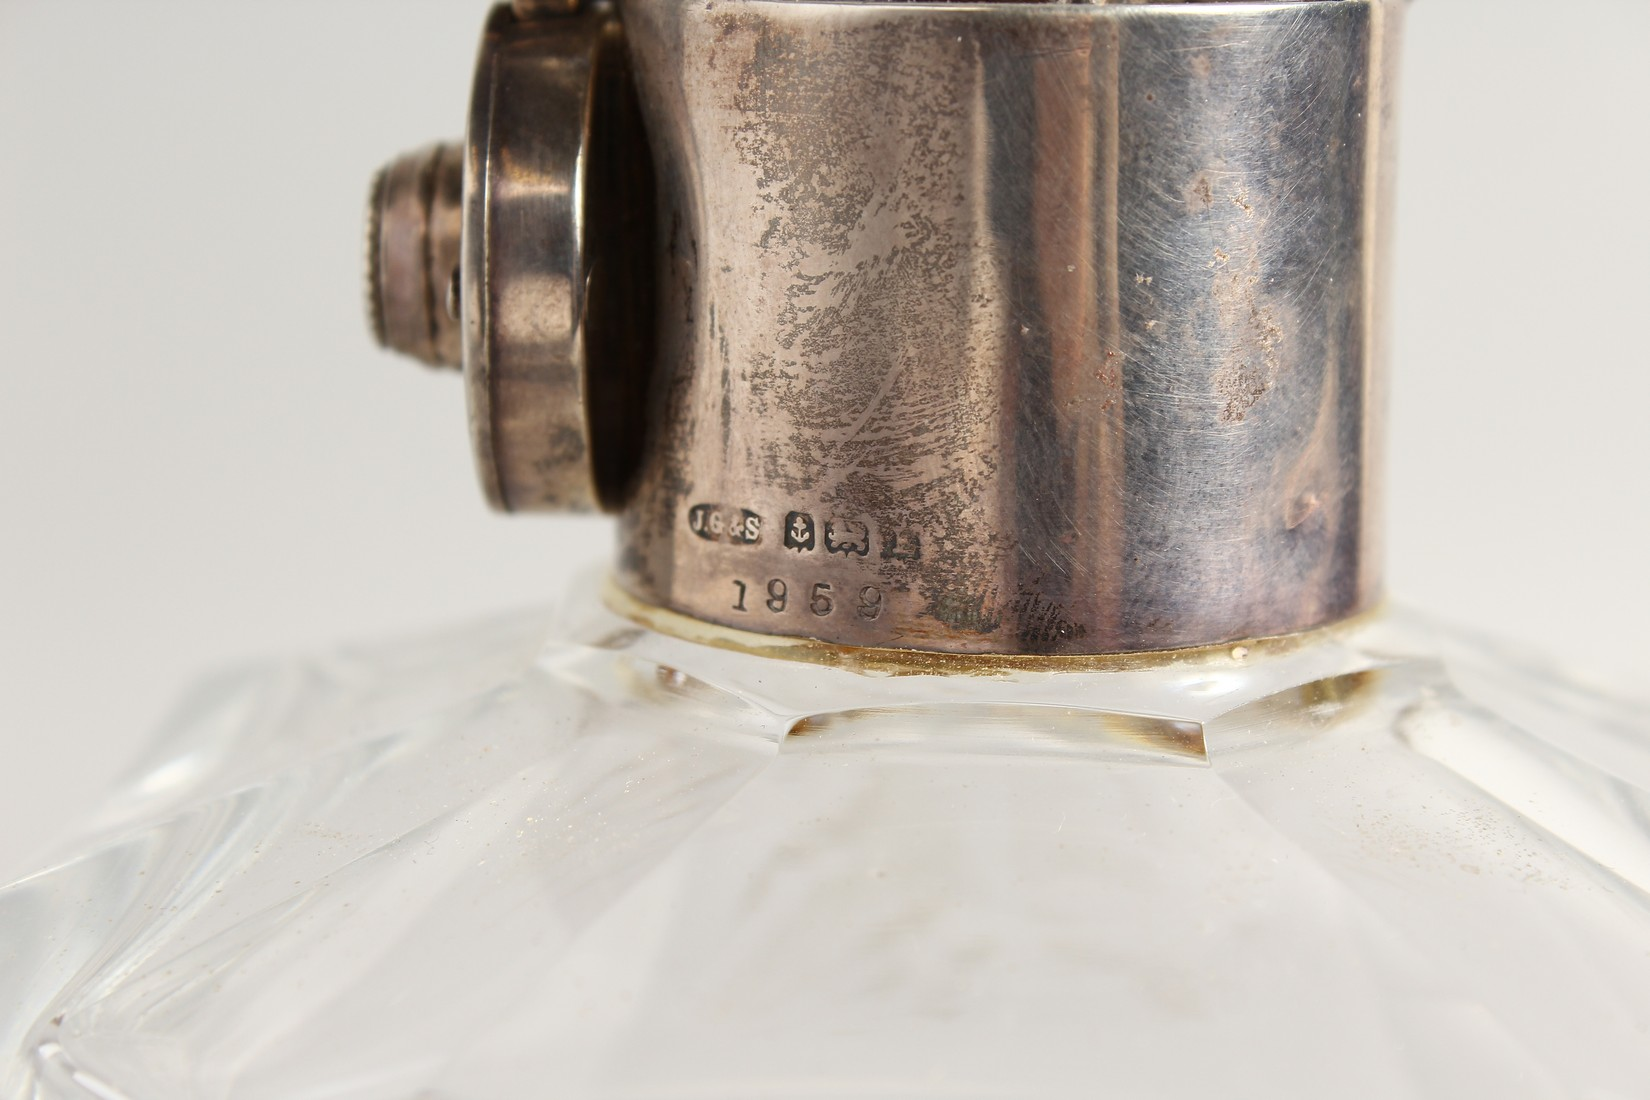 A HEAVY SQUARE GLASS WHISKY DECANTER AND STOPPER with silver band. - Image 3 of 3